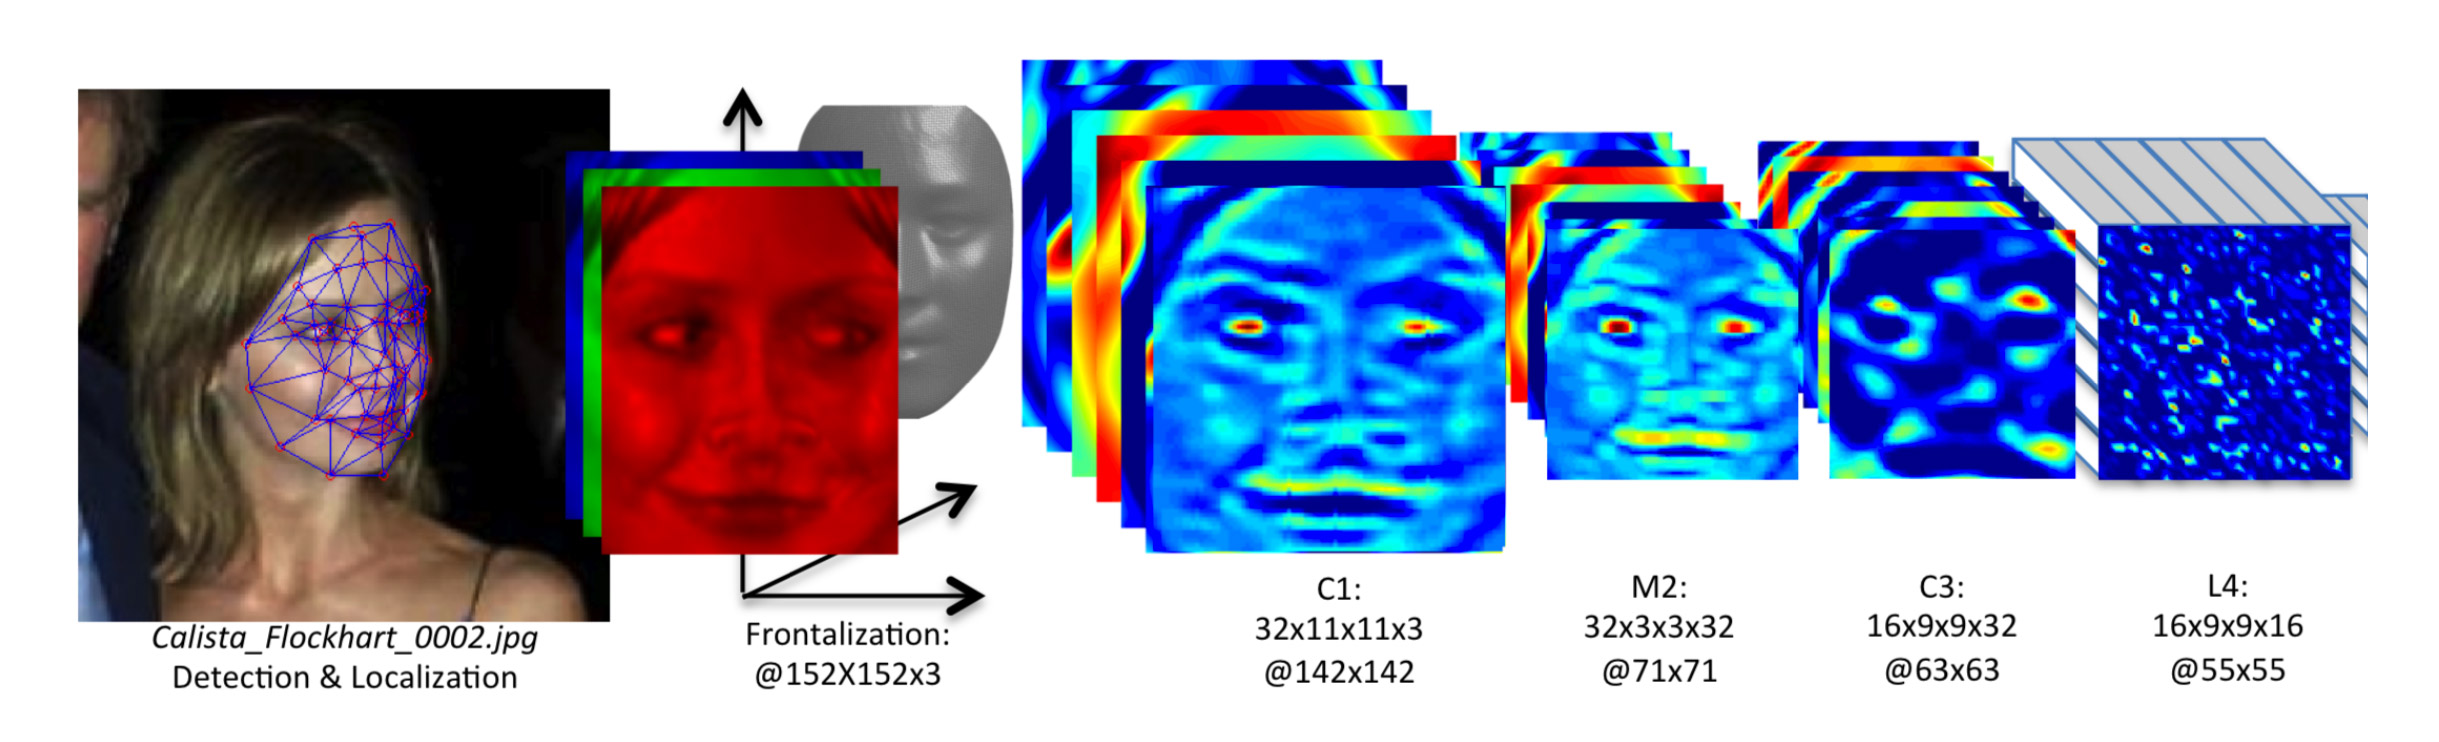 A scientific diagram shows the process by which a photograph of Calista Flockhart is transformed into data